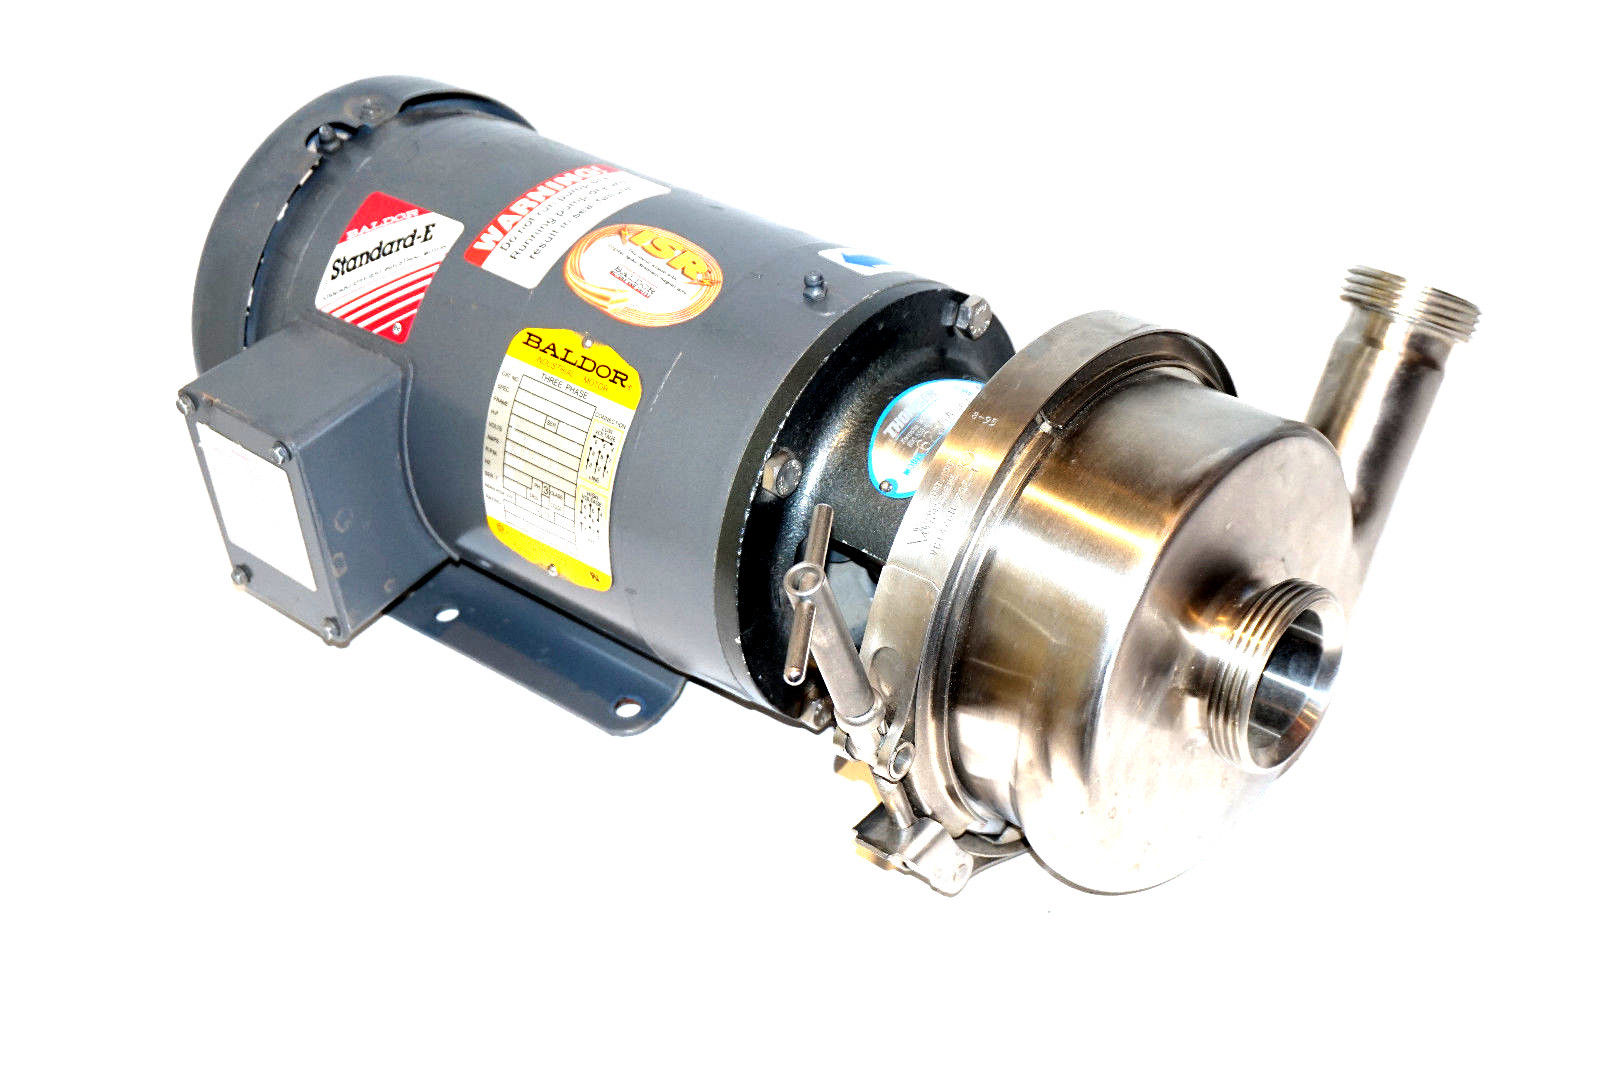 Dc Shunt Motor Wiring Diagram in addition New Baldor Cm35551 Electric Motor 3450 Rpm 2 Hp 3 Phase further 3 Phase 2 Sd Motor Wiring Diagram moreover 360708327334 together with Bodine Dc Motor Wiring Diagram. on baldor ac motor with sd control